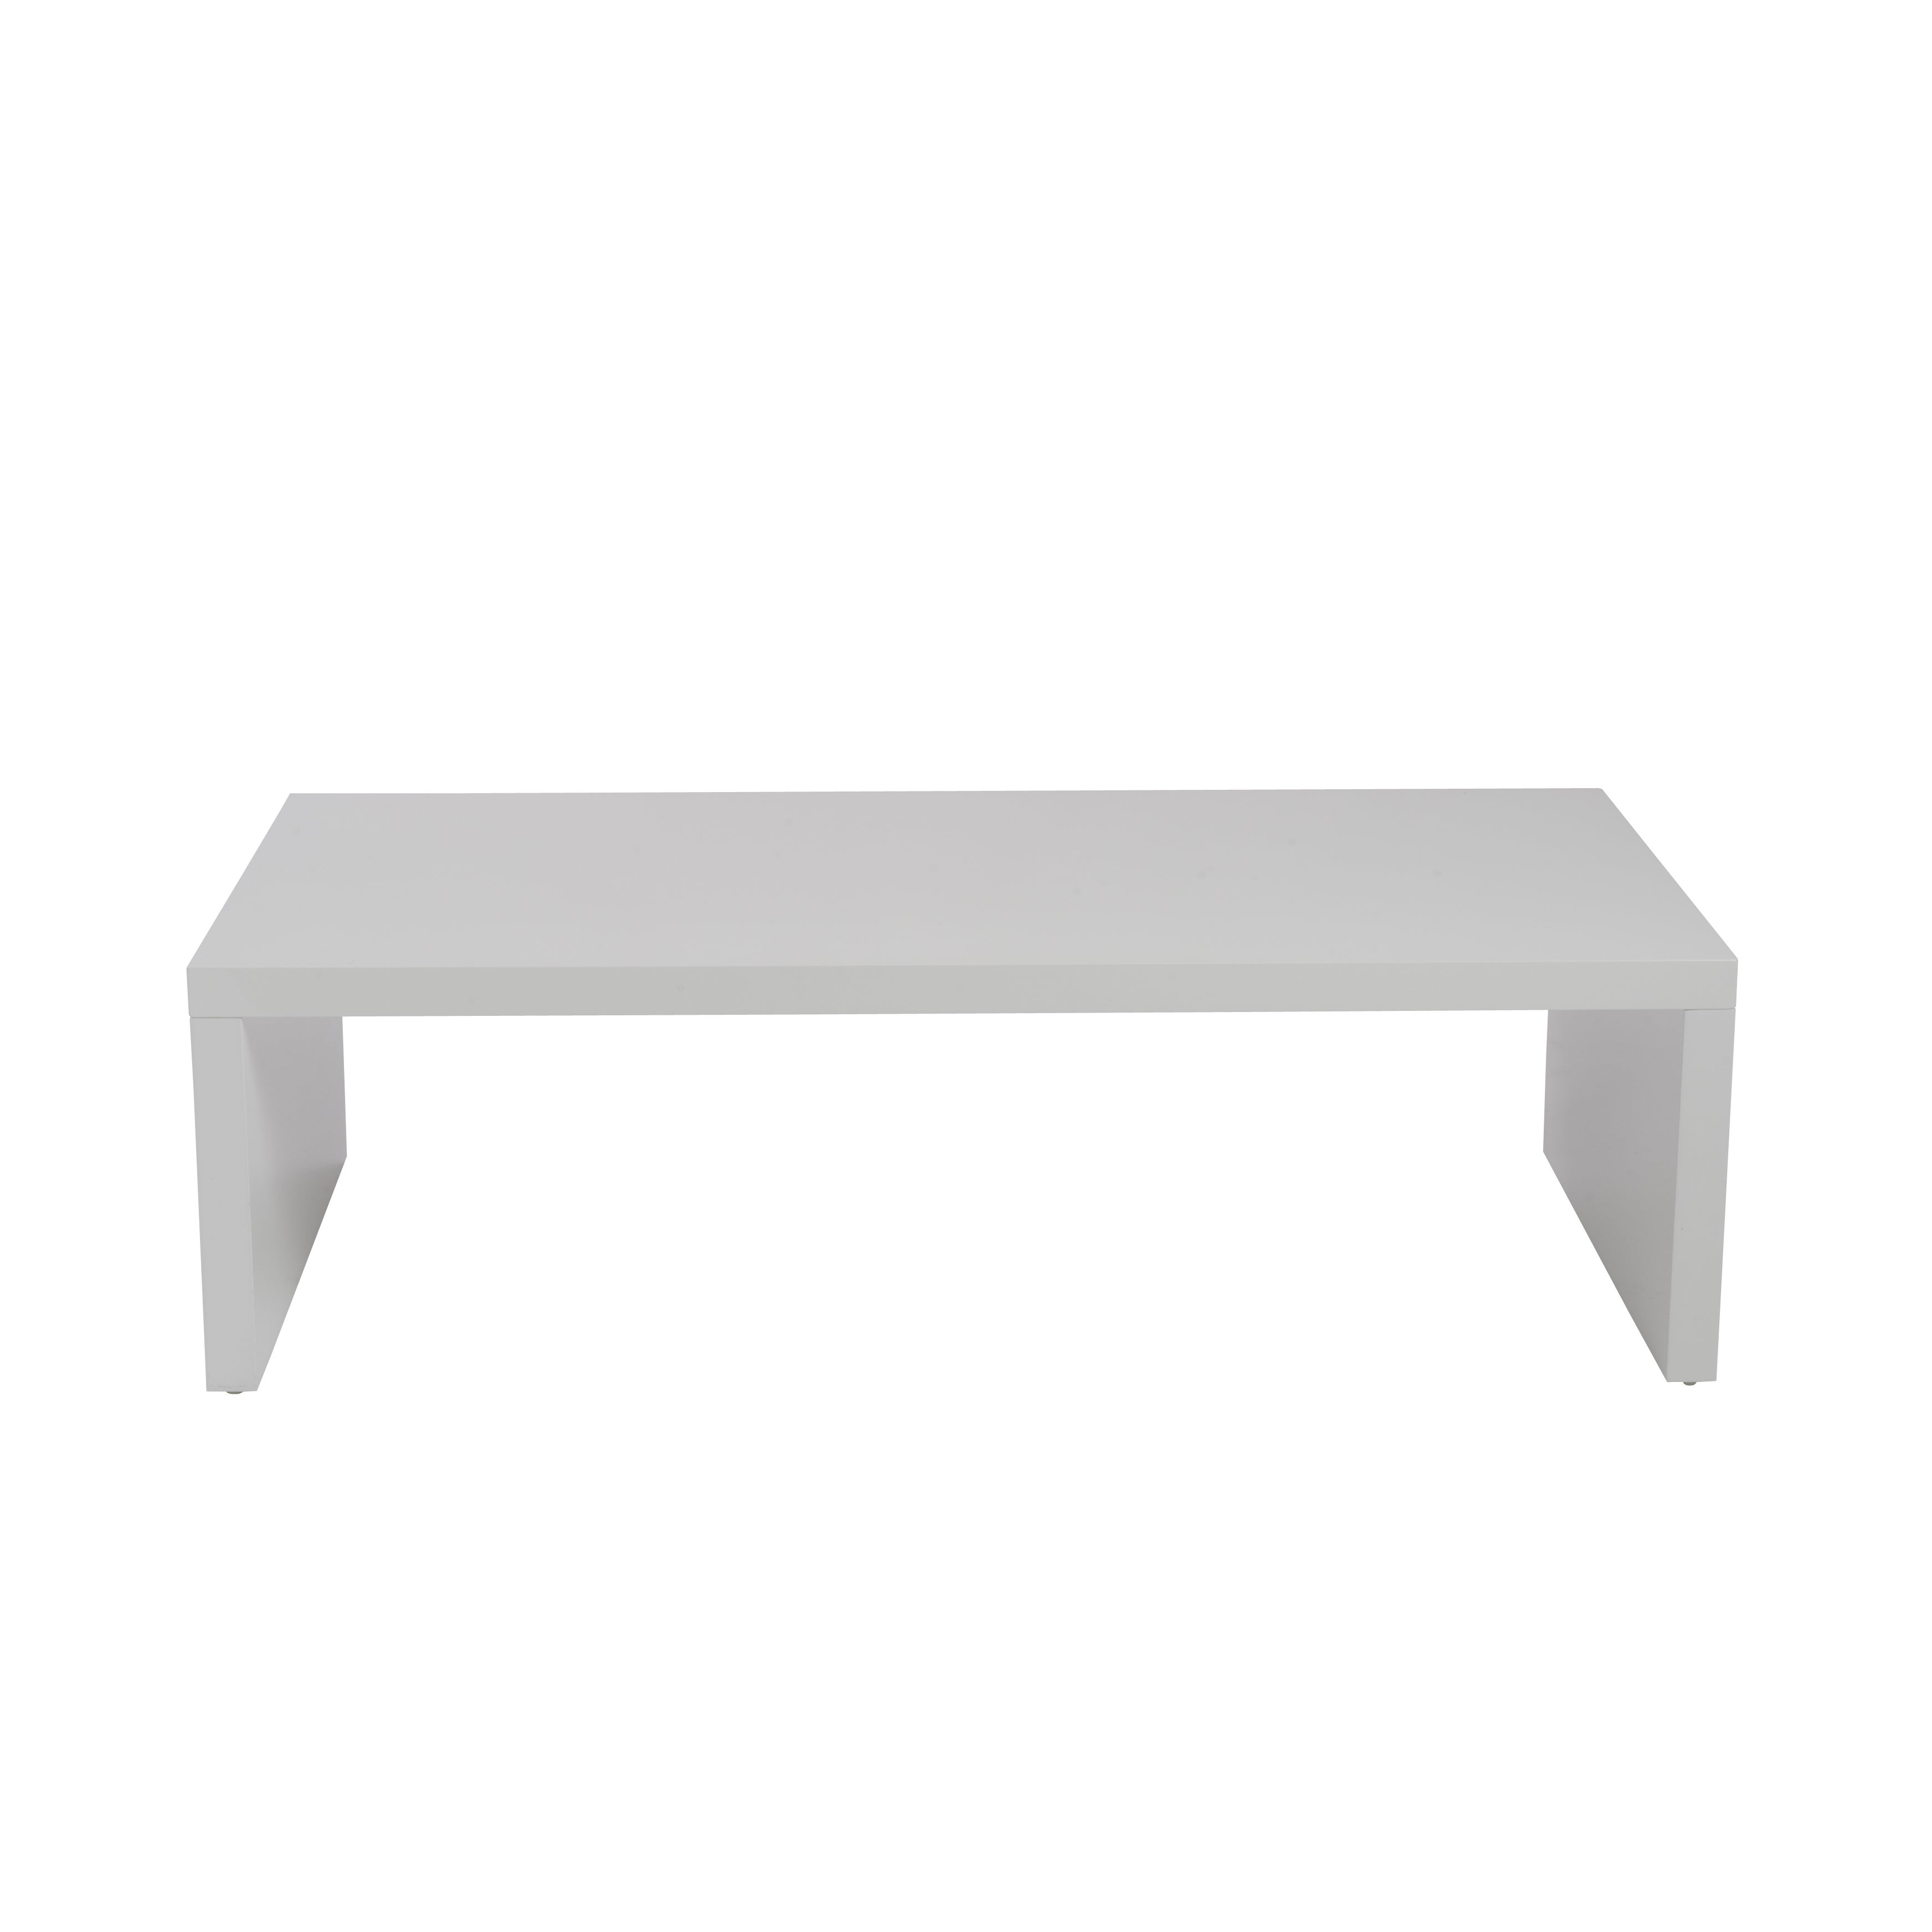 Shop Euro Style Abby High Gloss White Wood Rectangle Coffee Table   Free  Shipping Today   Overstock.com   12991462